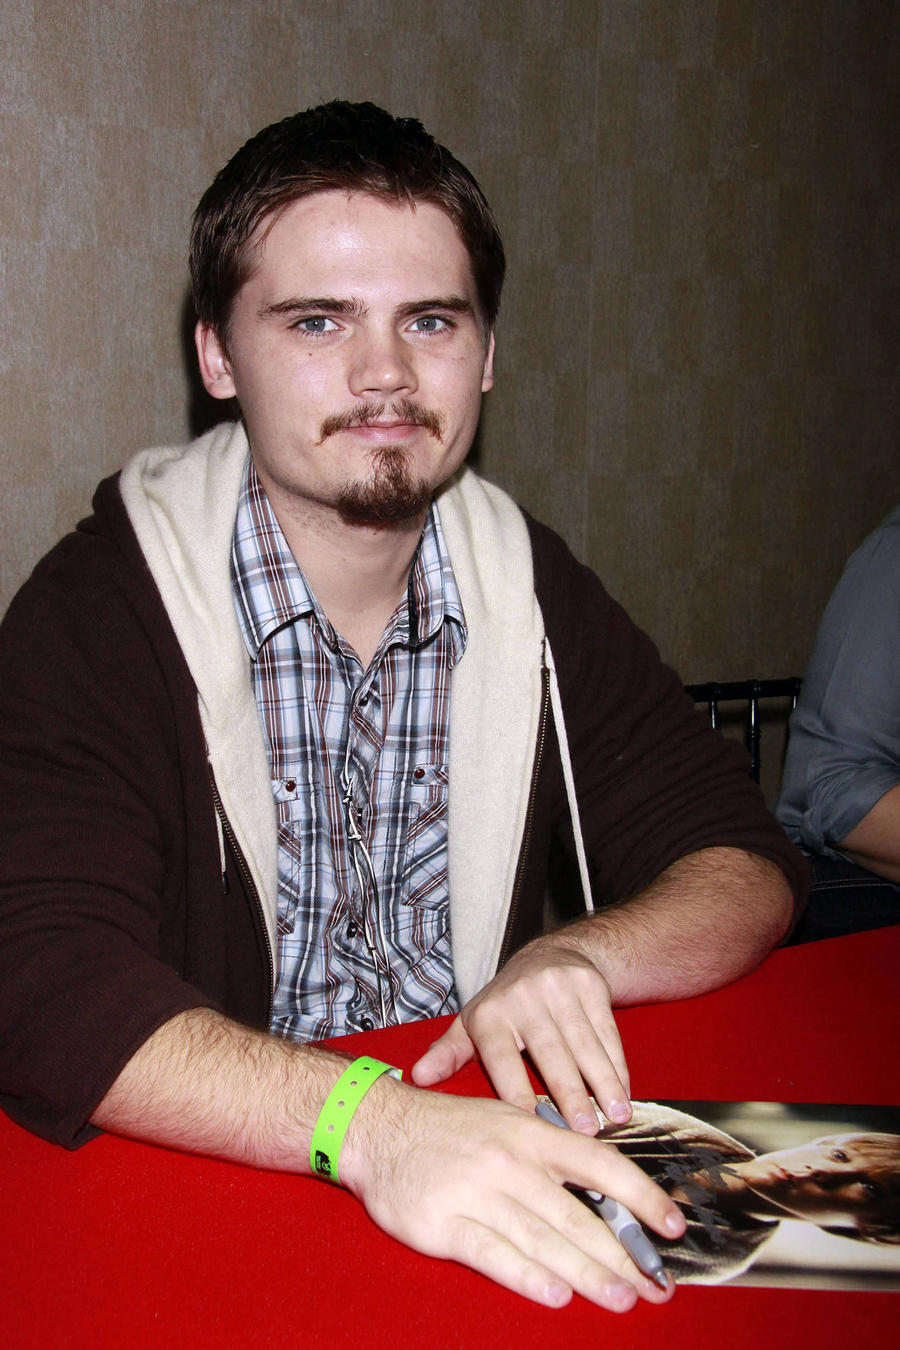 Star Wars Kid Jake Lloyd Seeking Psychiatric Help For Schizophrenia